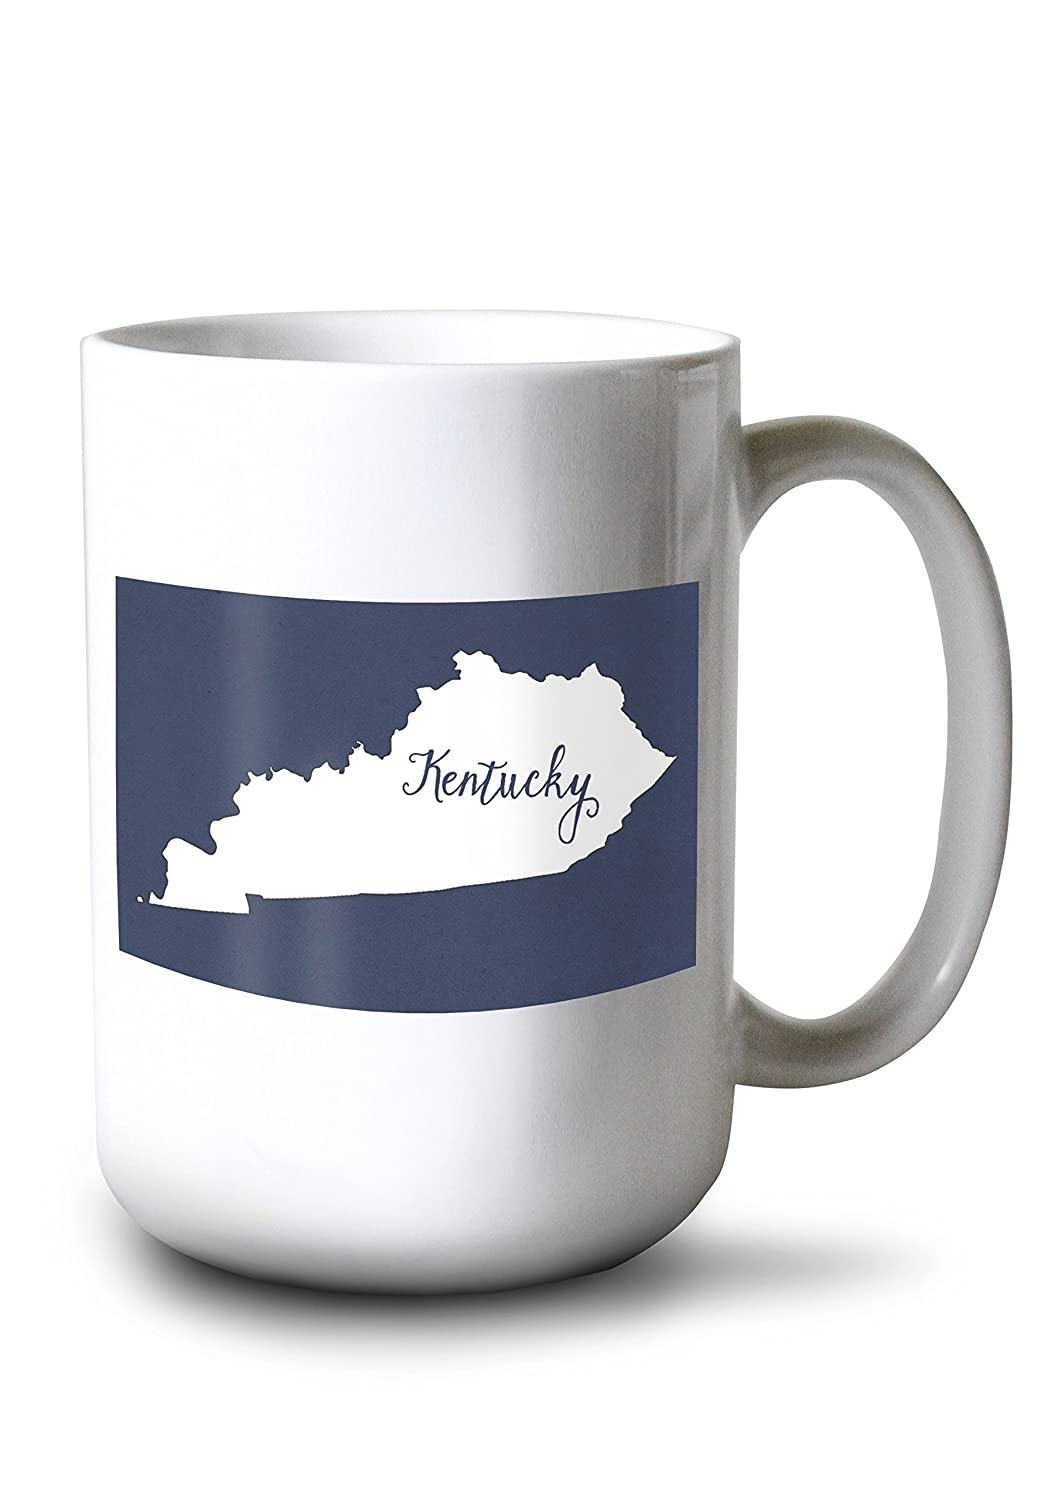 Kentucky – ホーム状態 – White On Navy 15oz Mug LANT-3P-15OZ-WHT-76899 B01I5K8T9K  15oz Mug